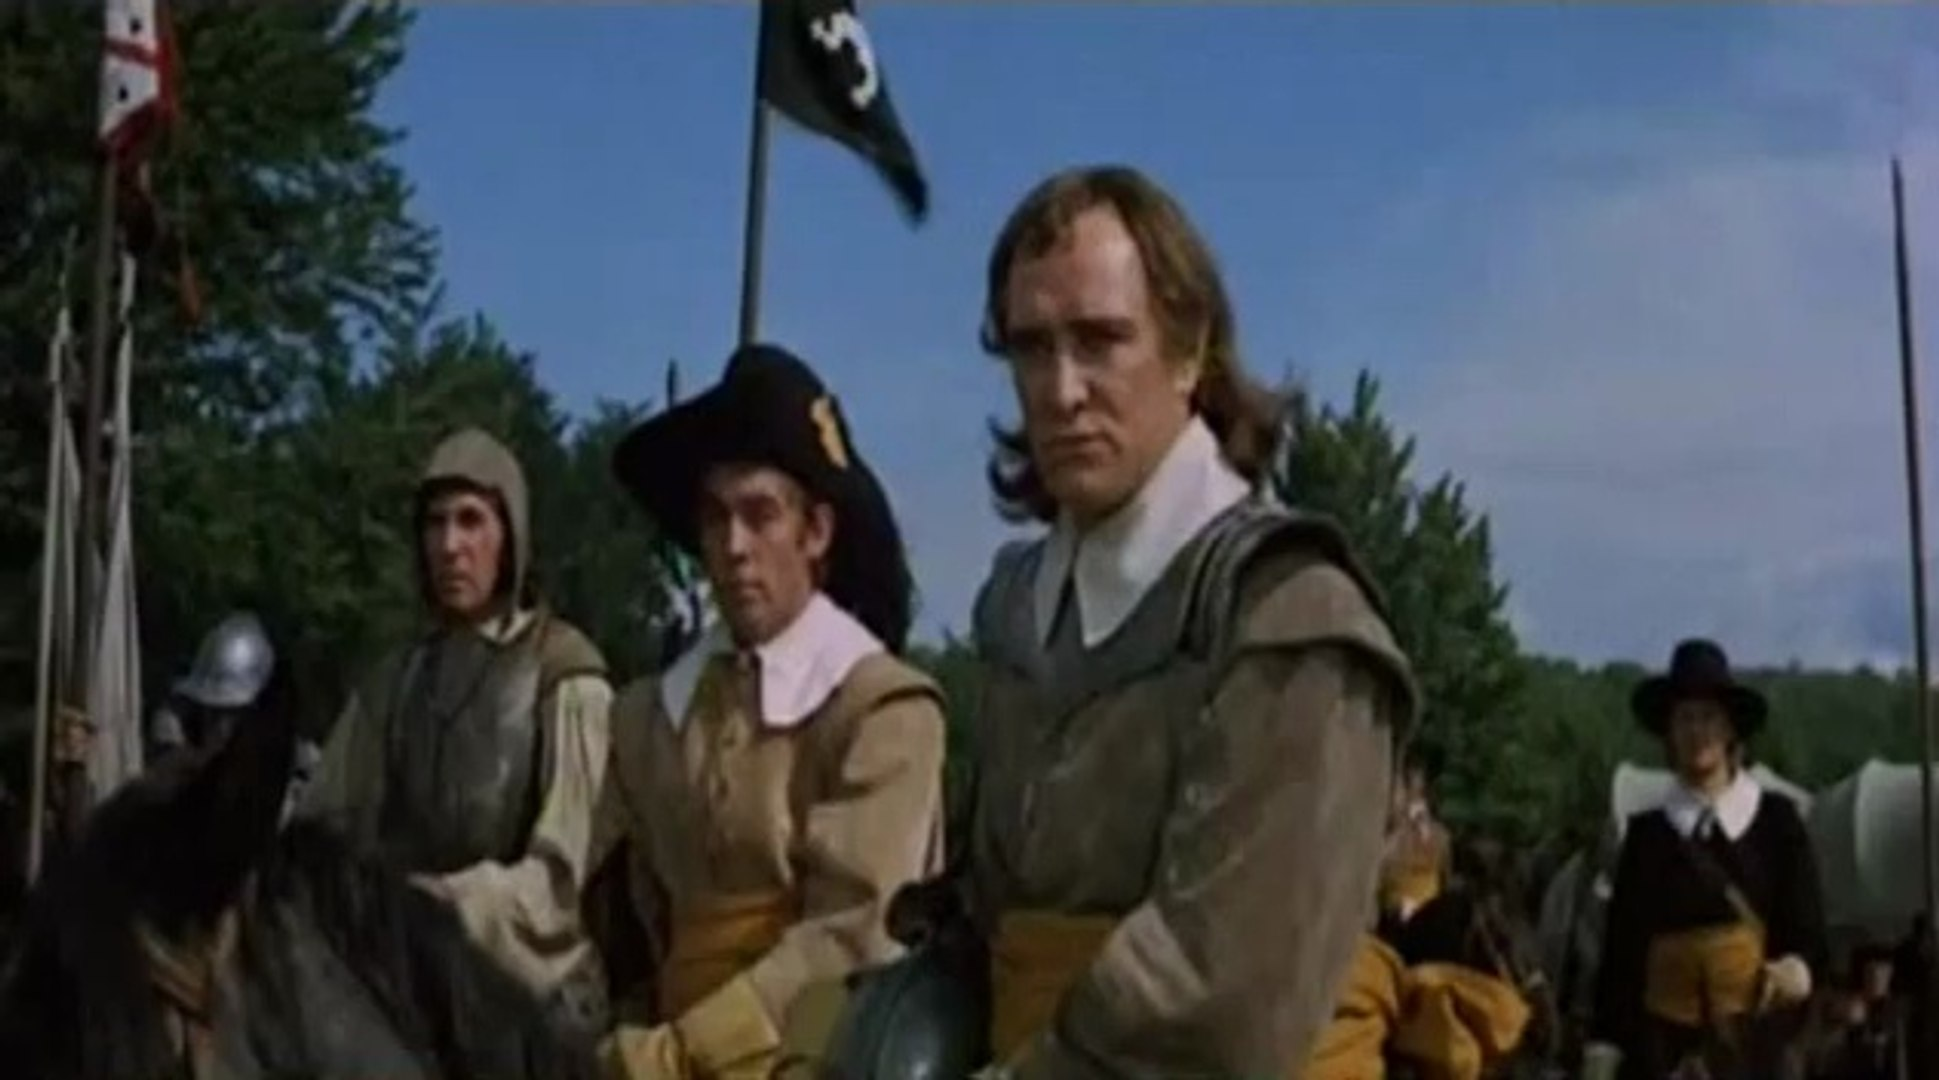 Cromwell (1970) - Richard Harris, Alec Guinness - Feature (Drama)